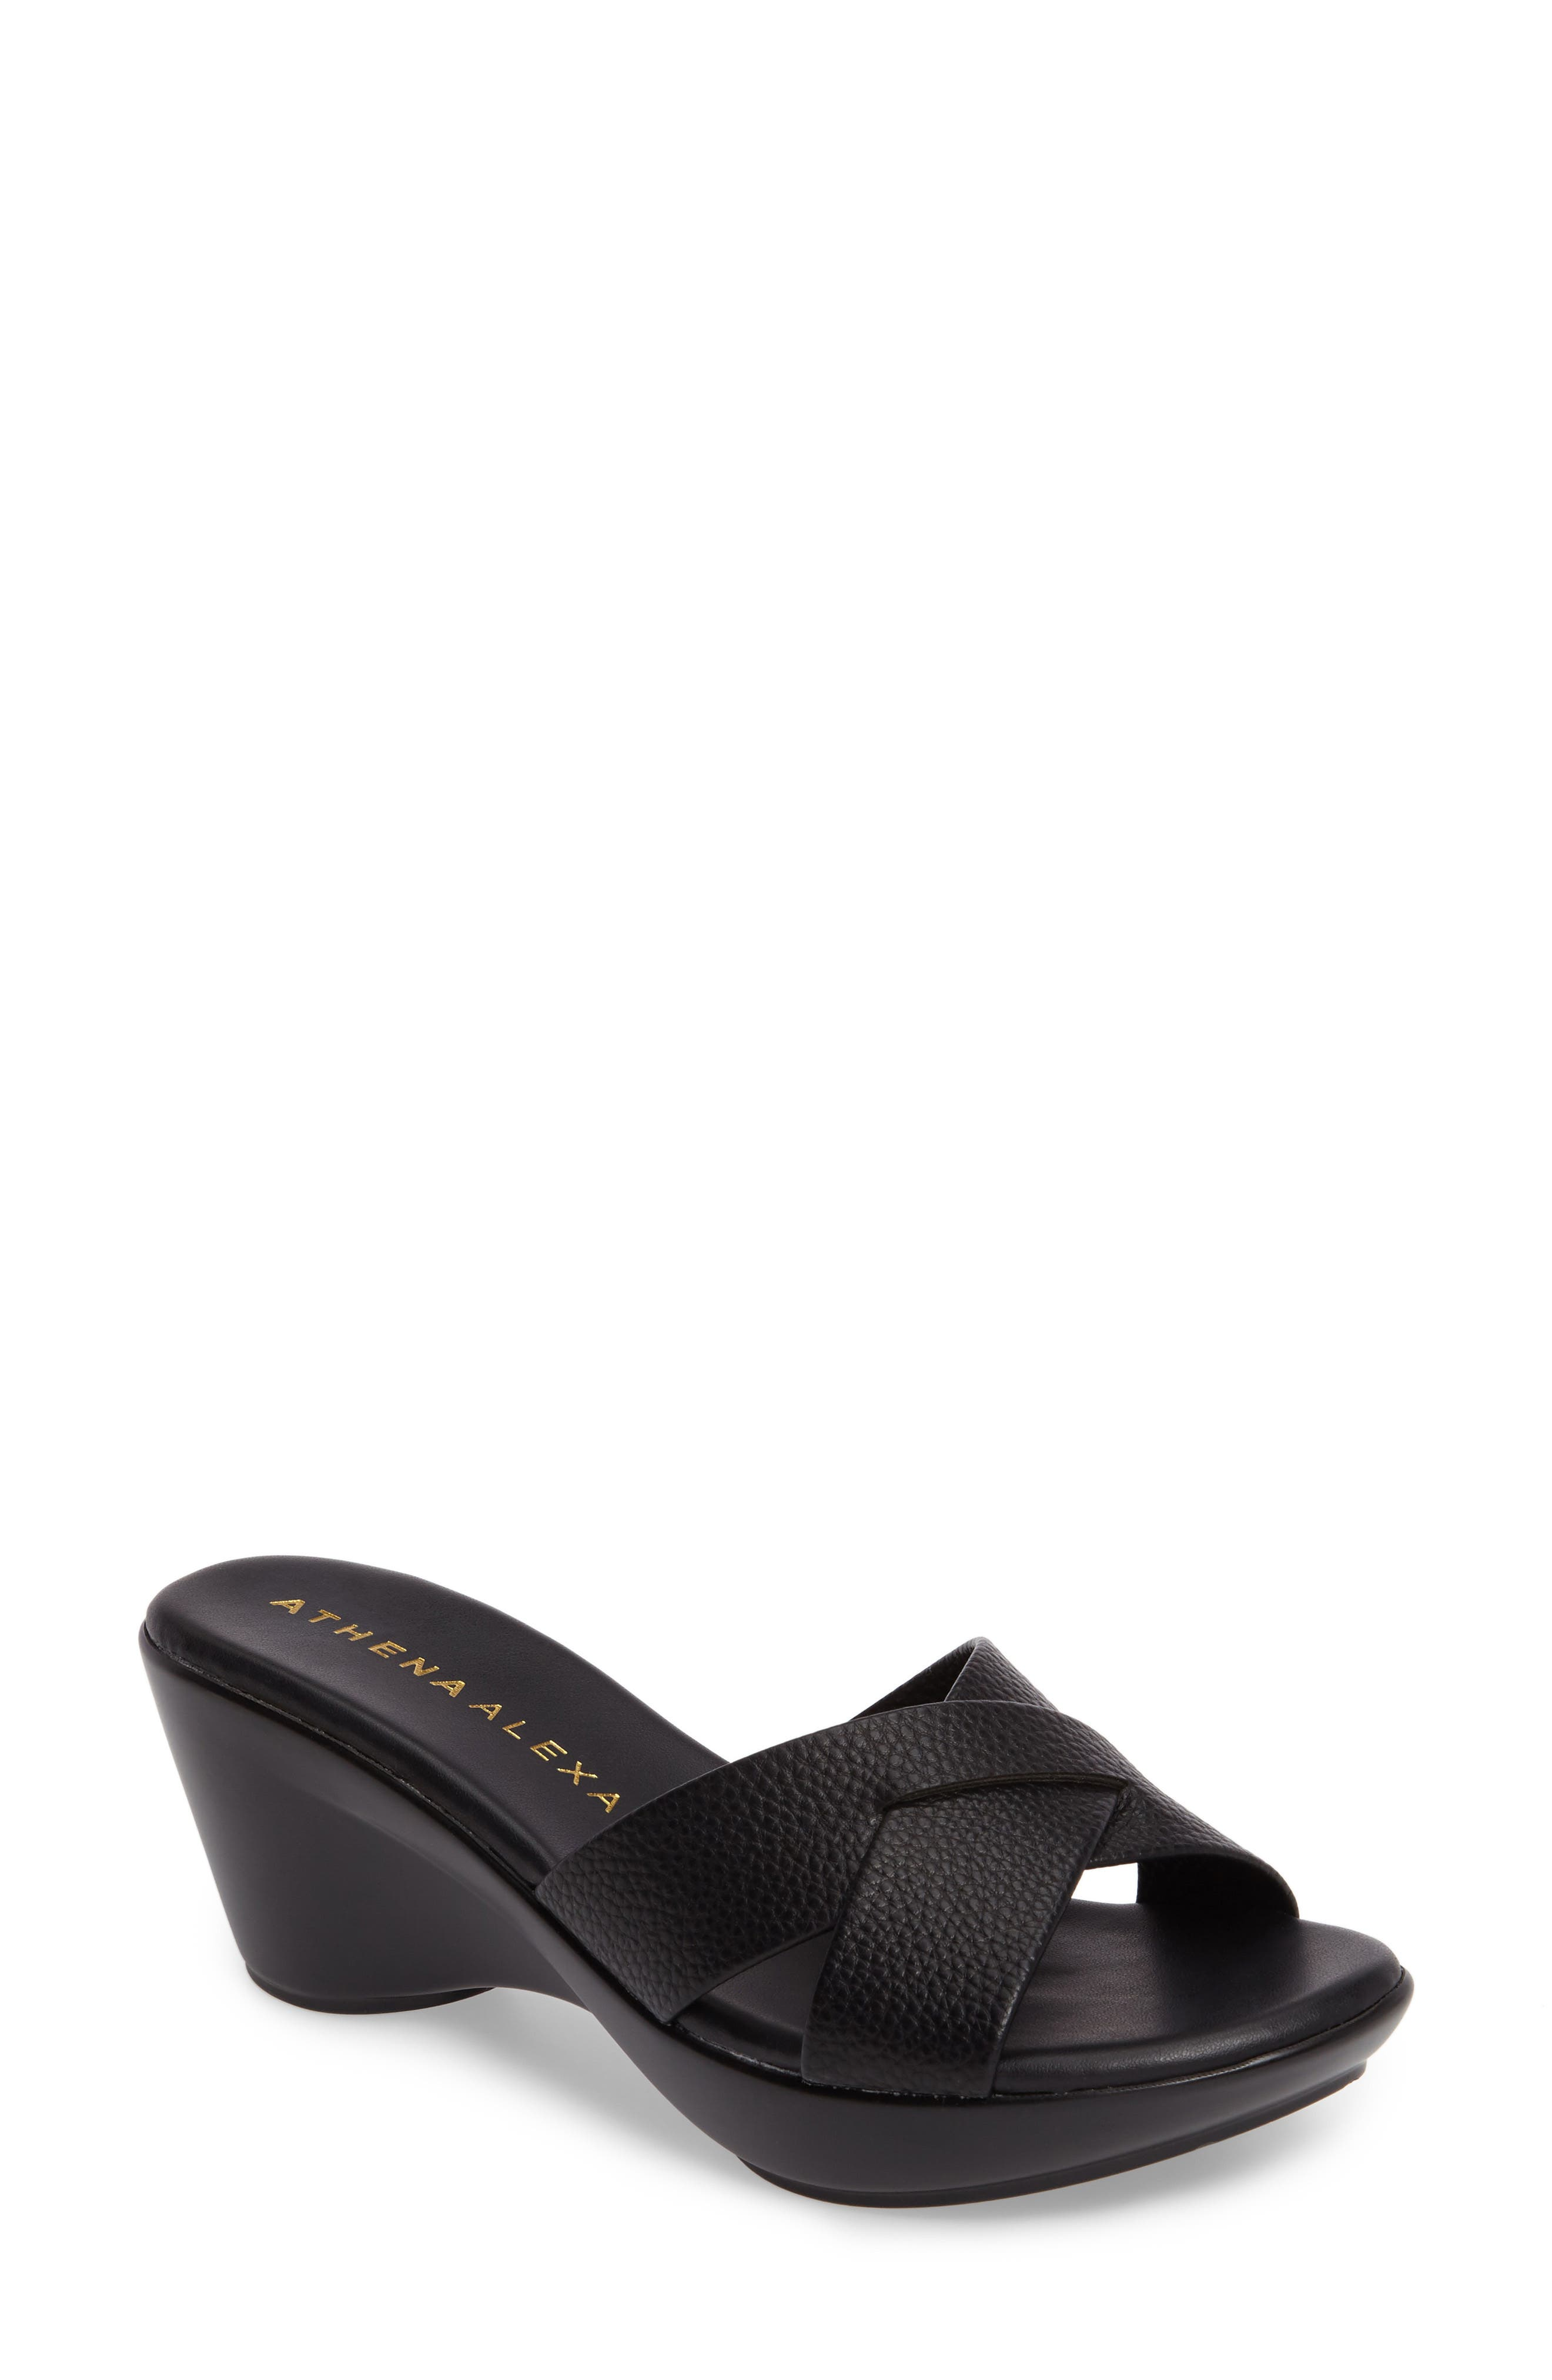 Alternate Image 1 Selected - Athena Alexander Verna Wedge Slide (Women)